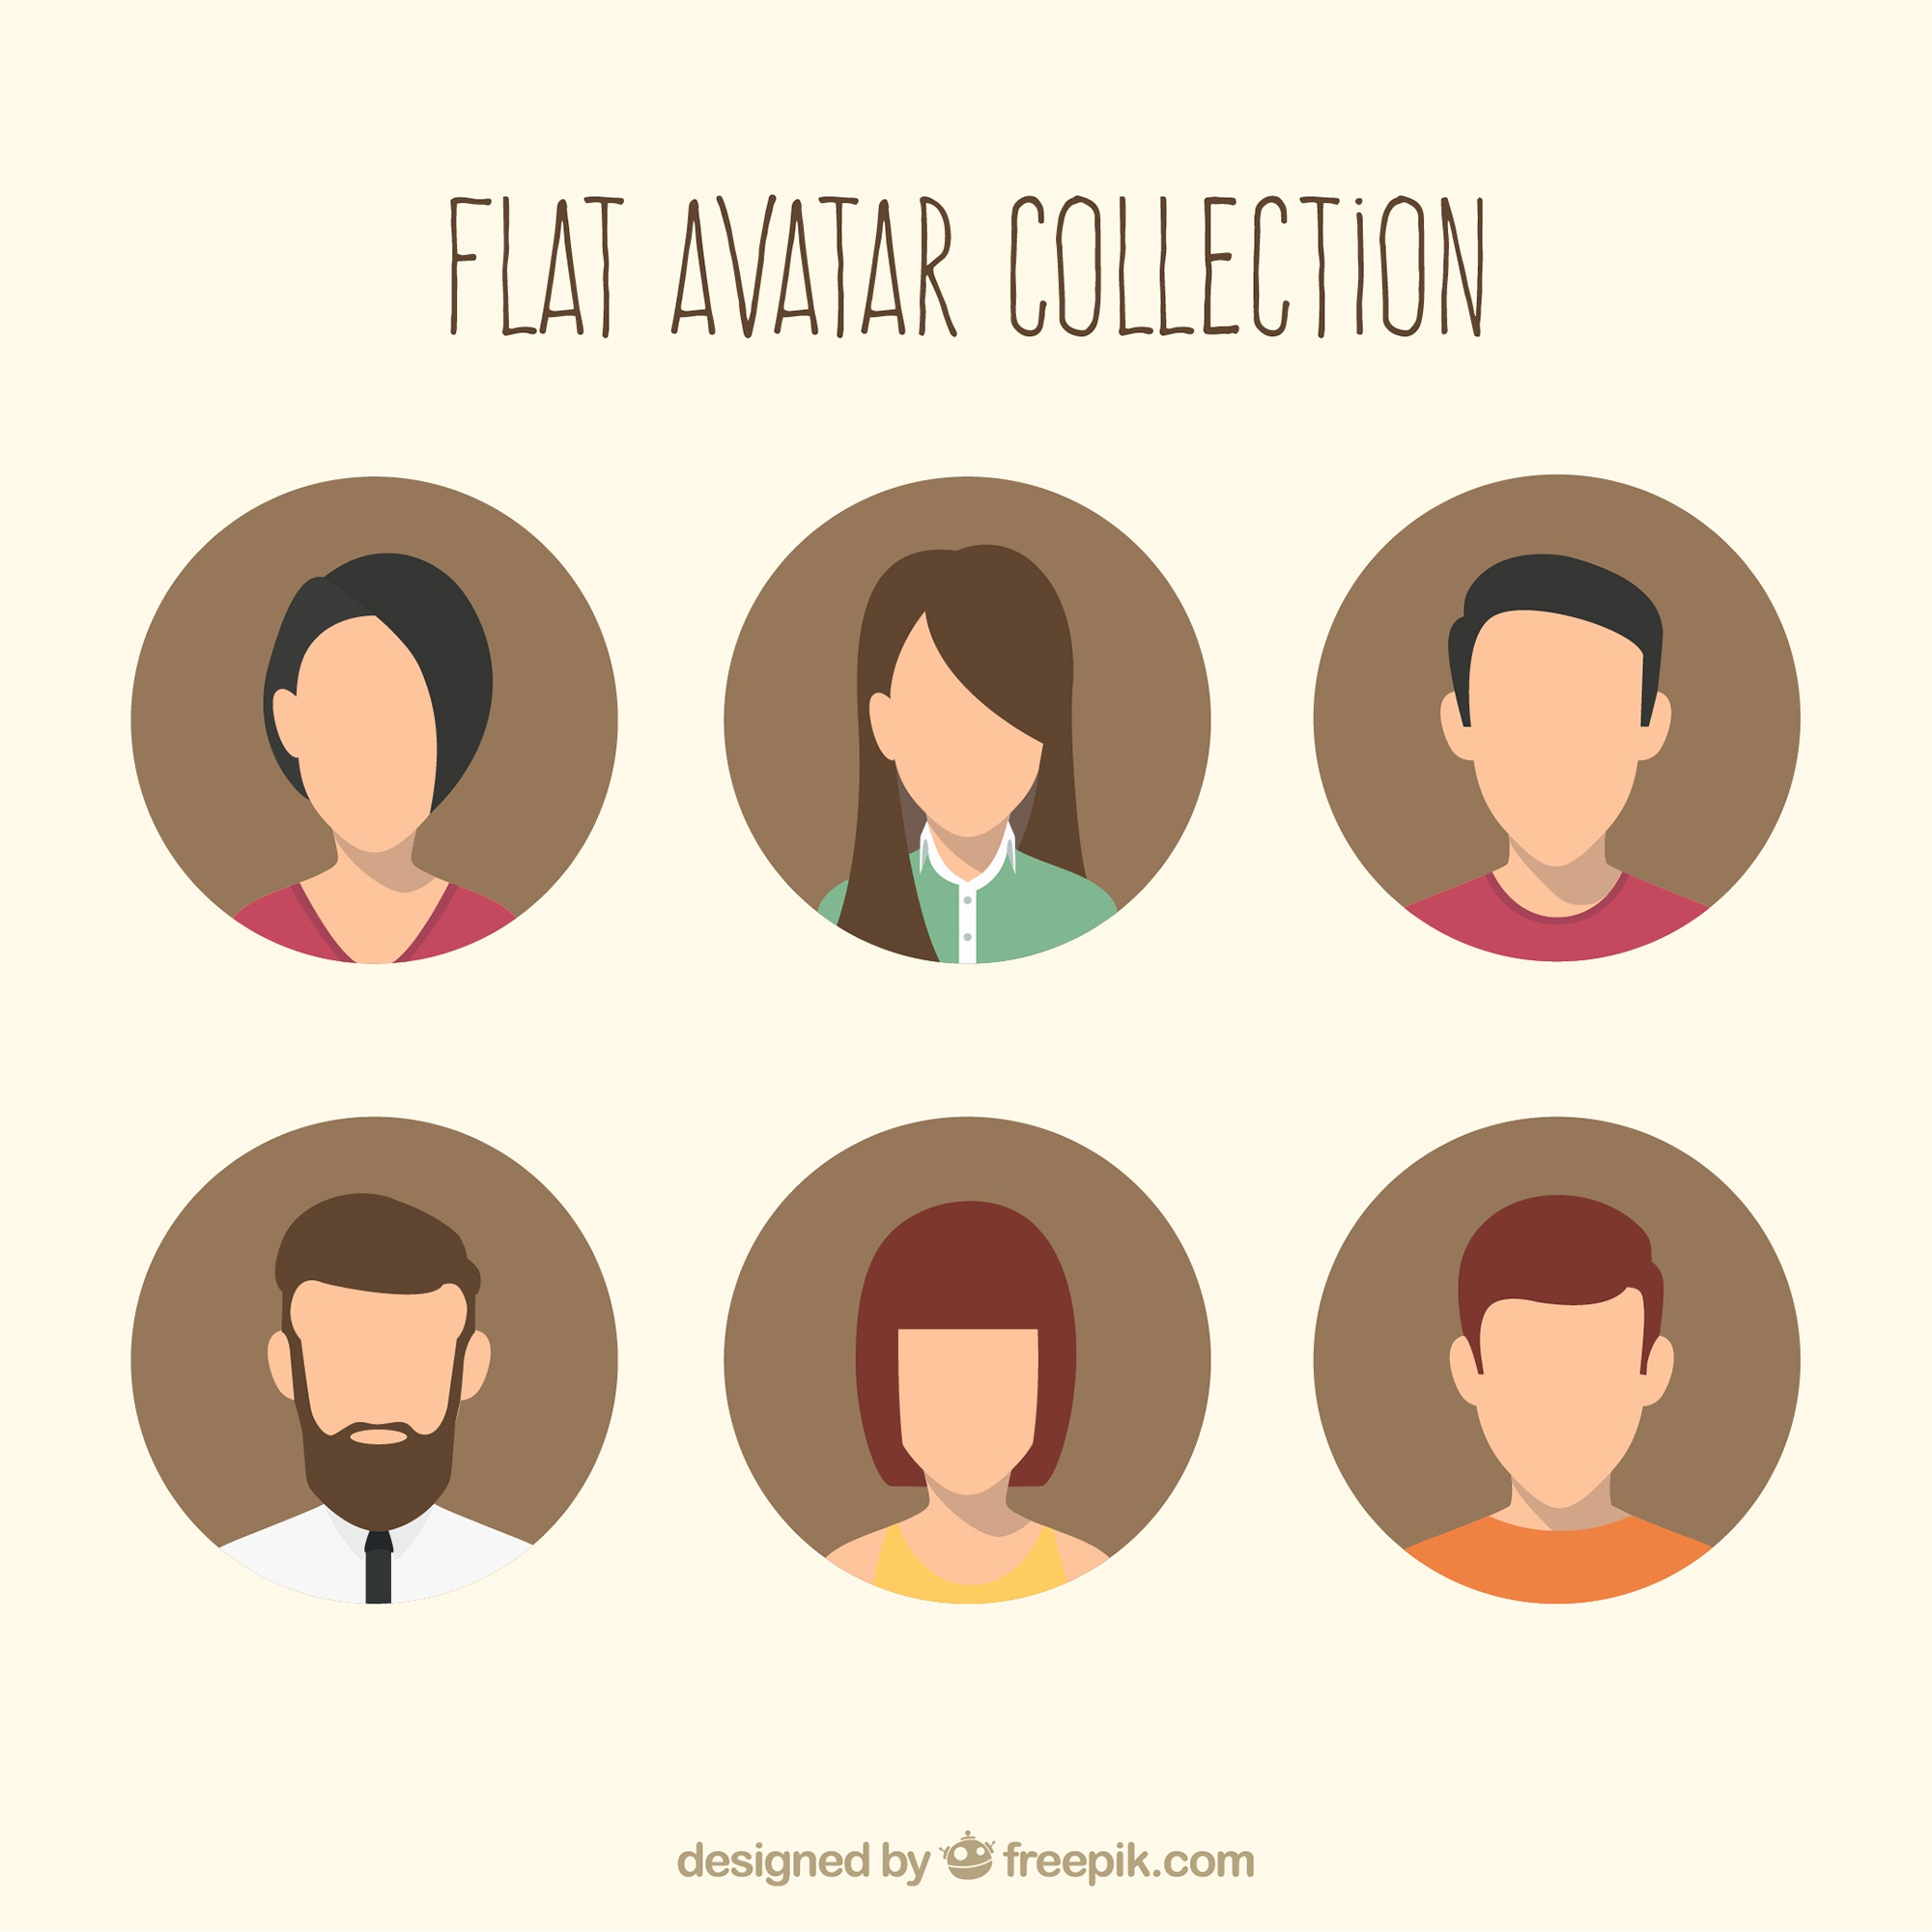 Flat avatars with modern style